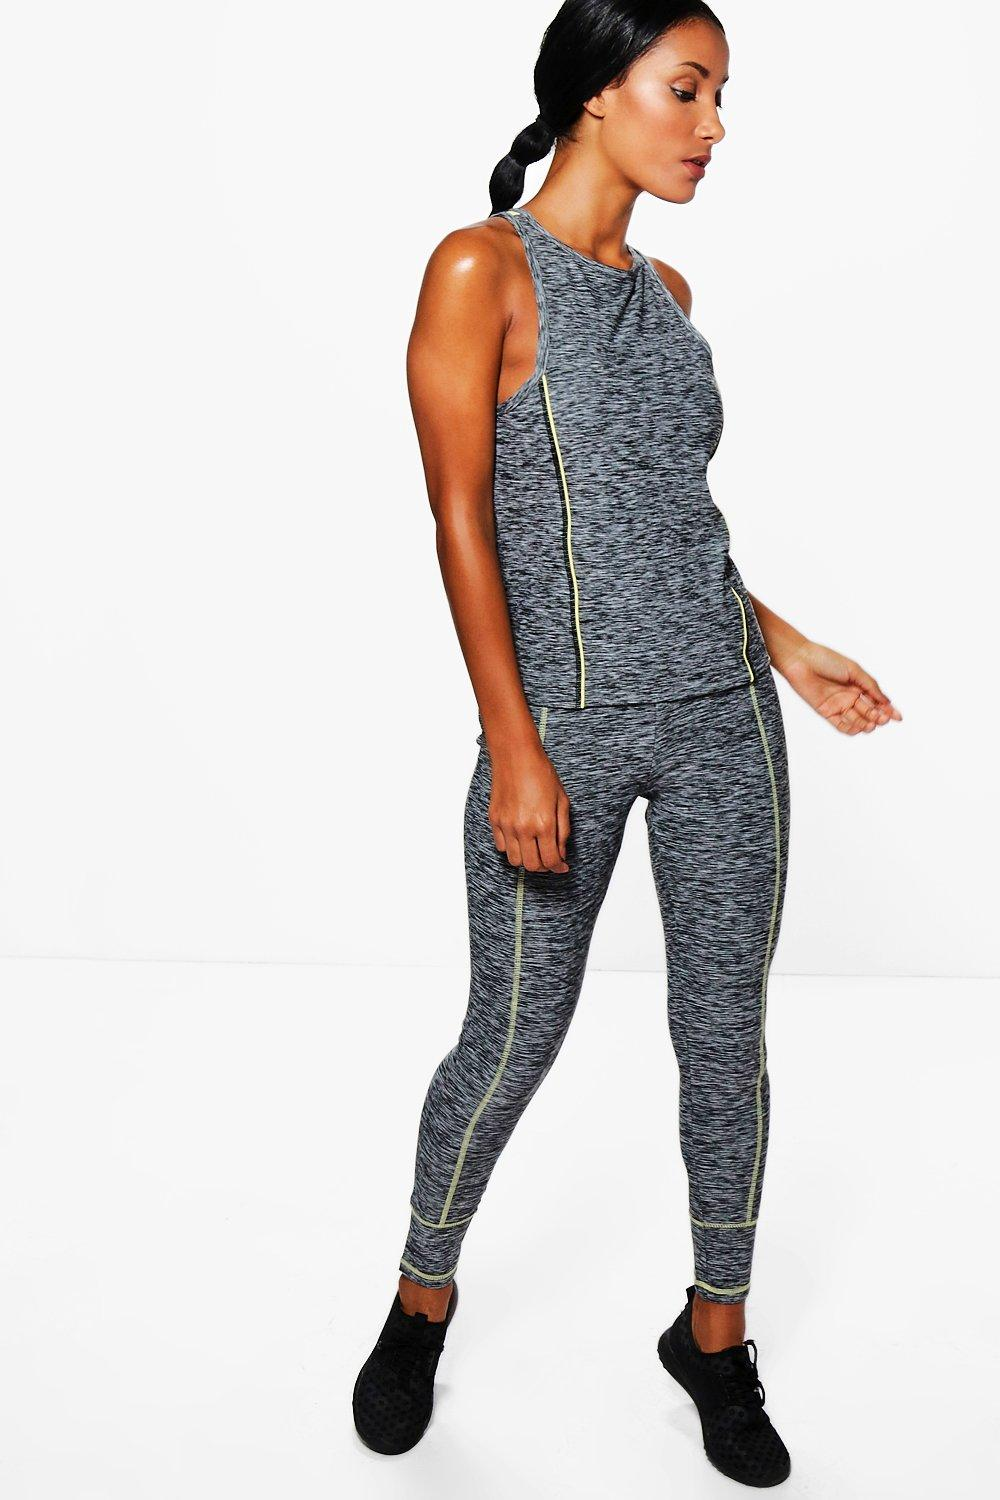 Libby Fit Running Leggings